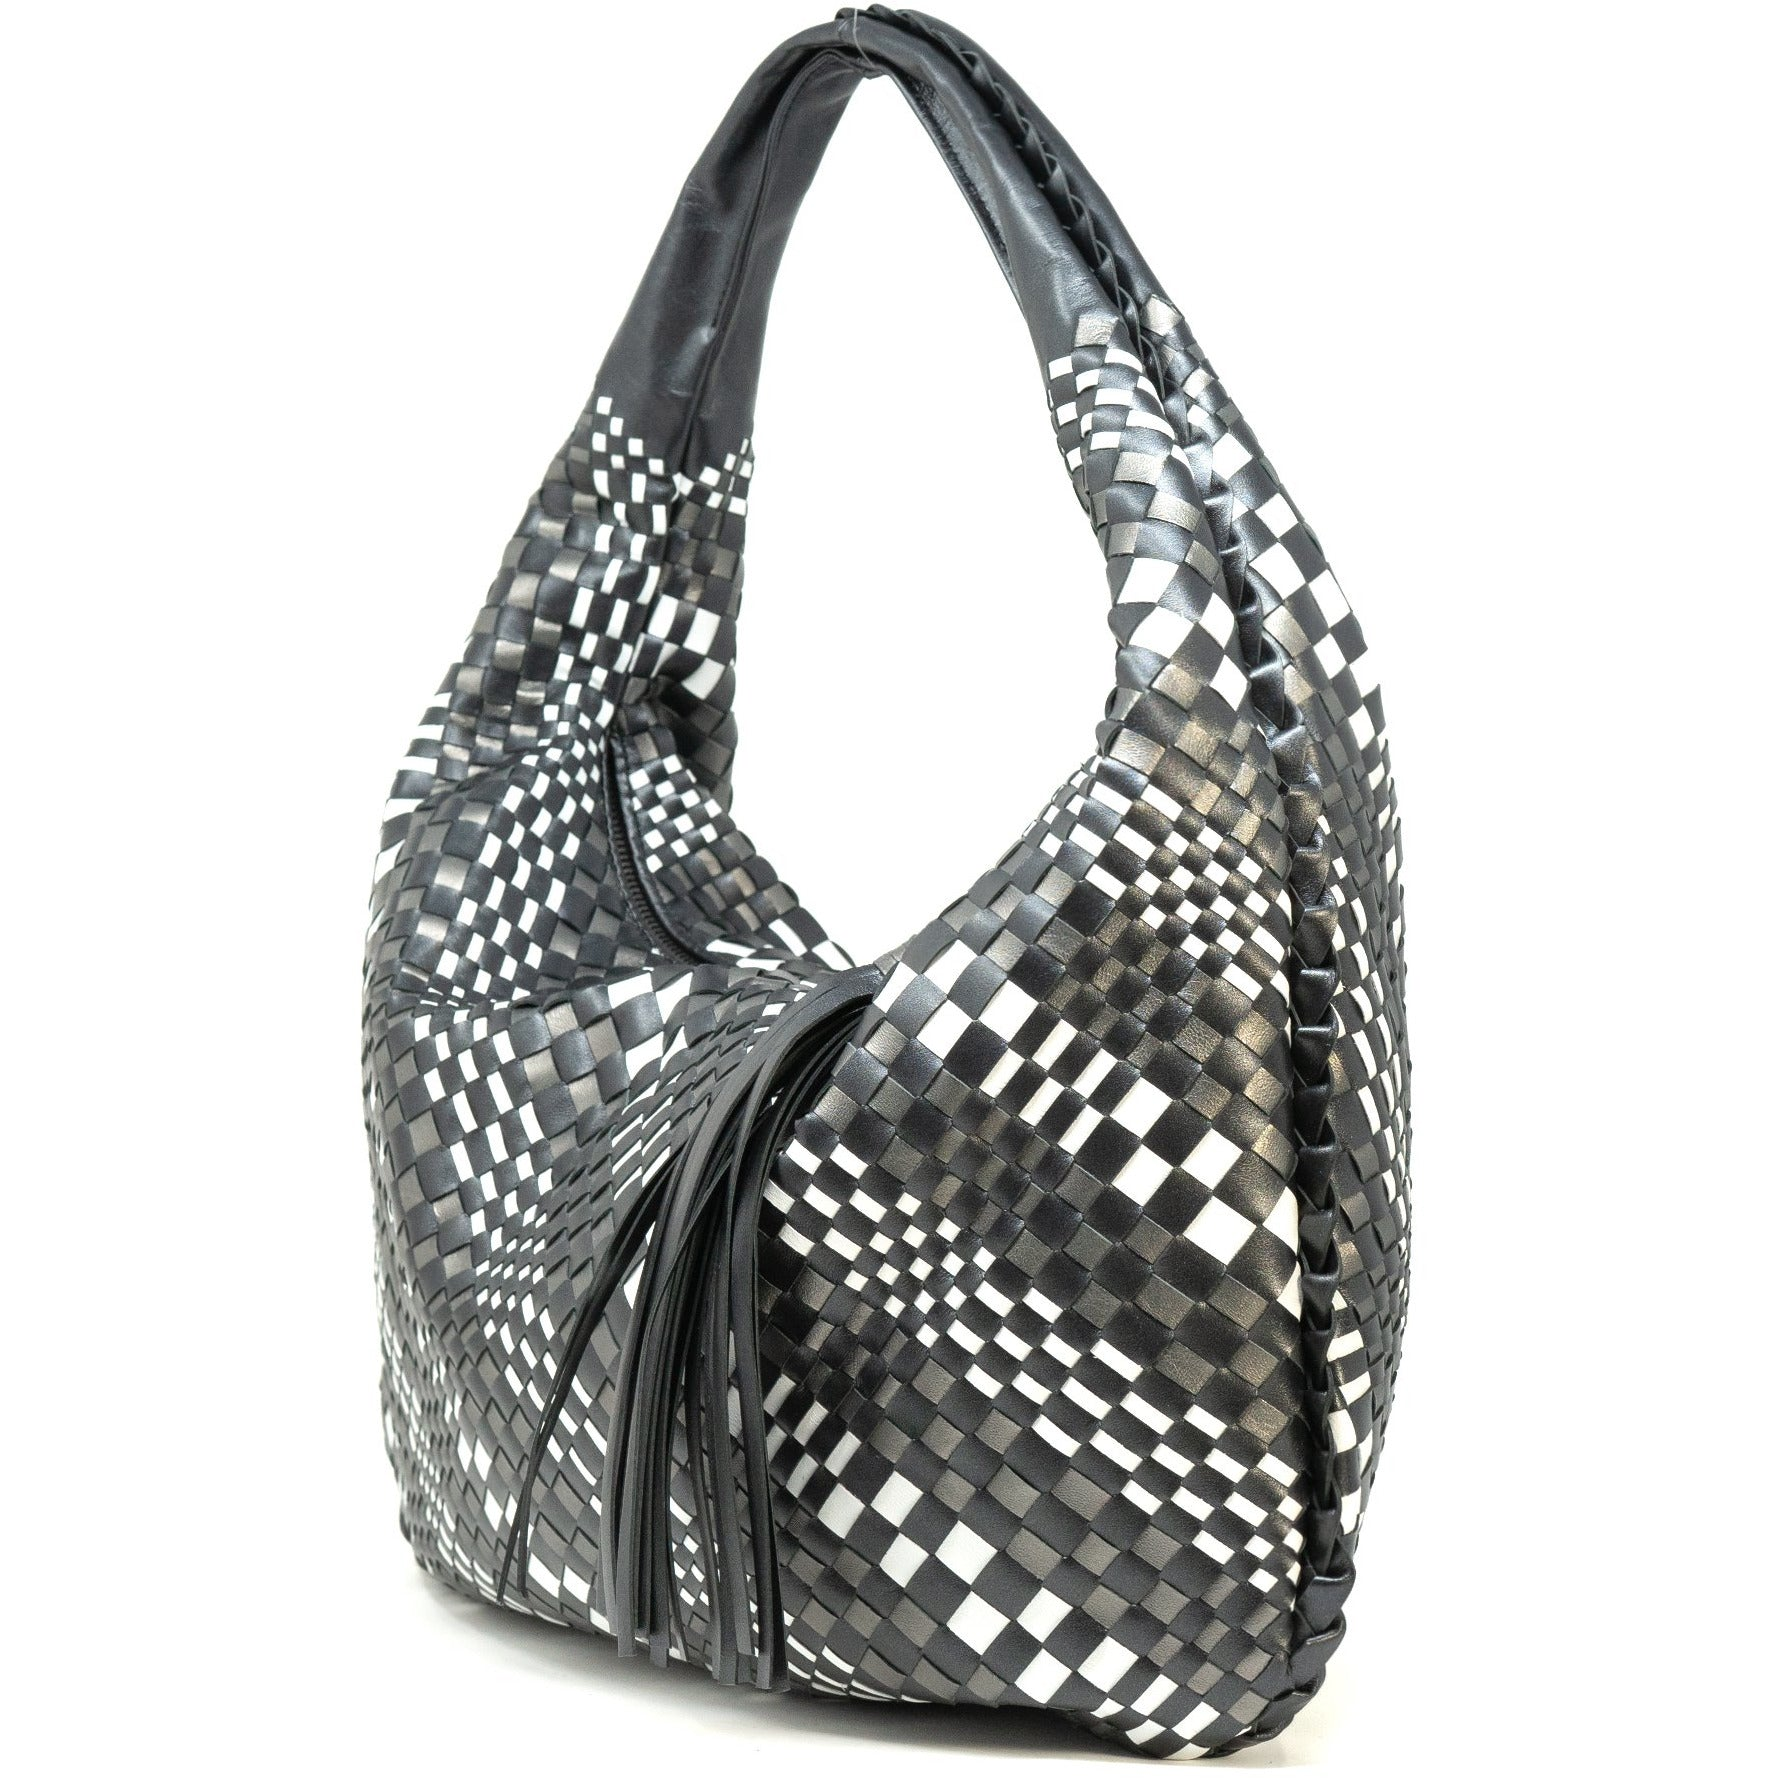 Brigitte Is Women Intrecciato Hobo Bag in Pearled Black - Jennifer Tattanelli